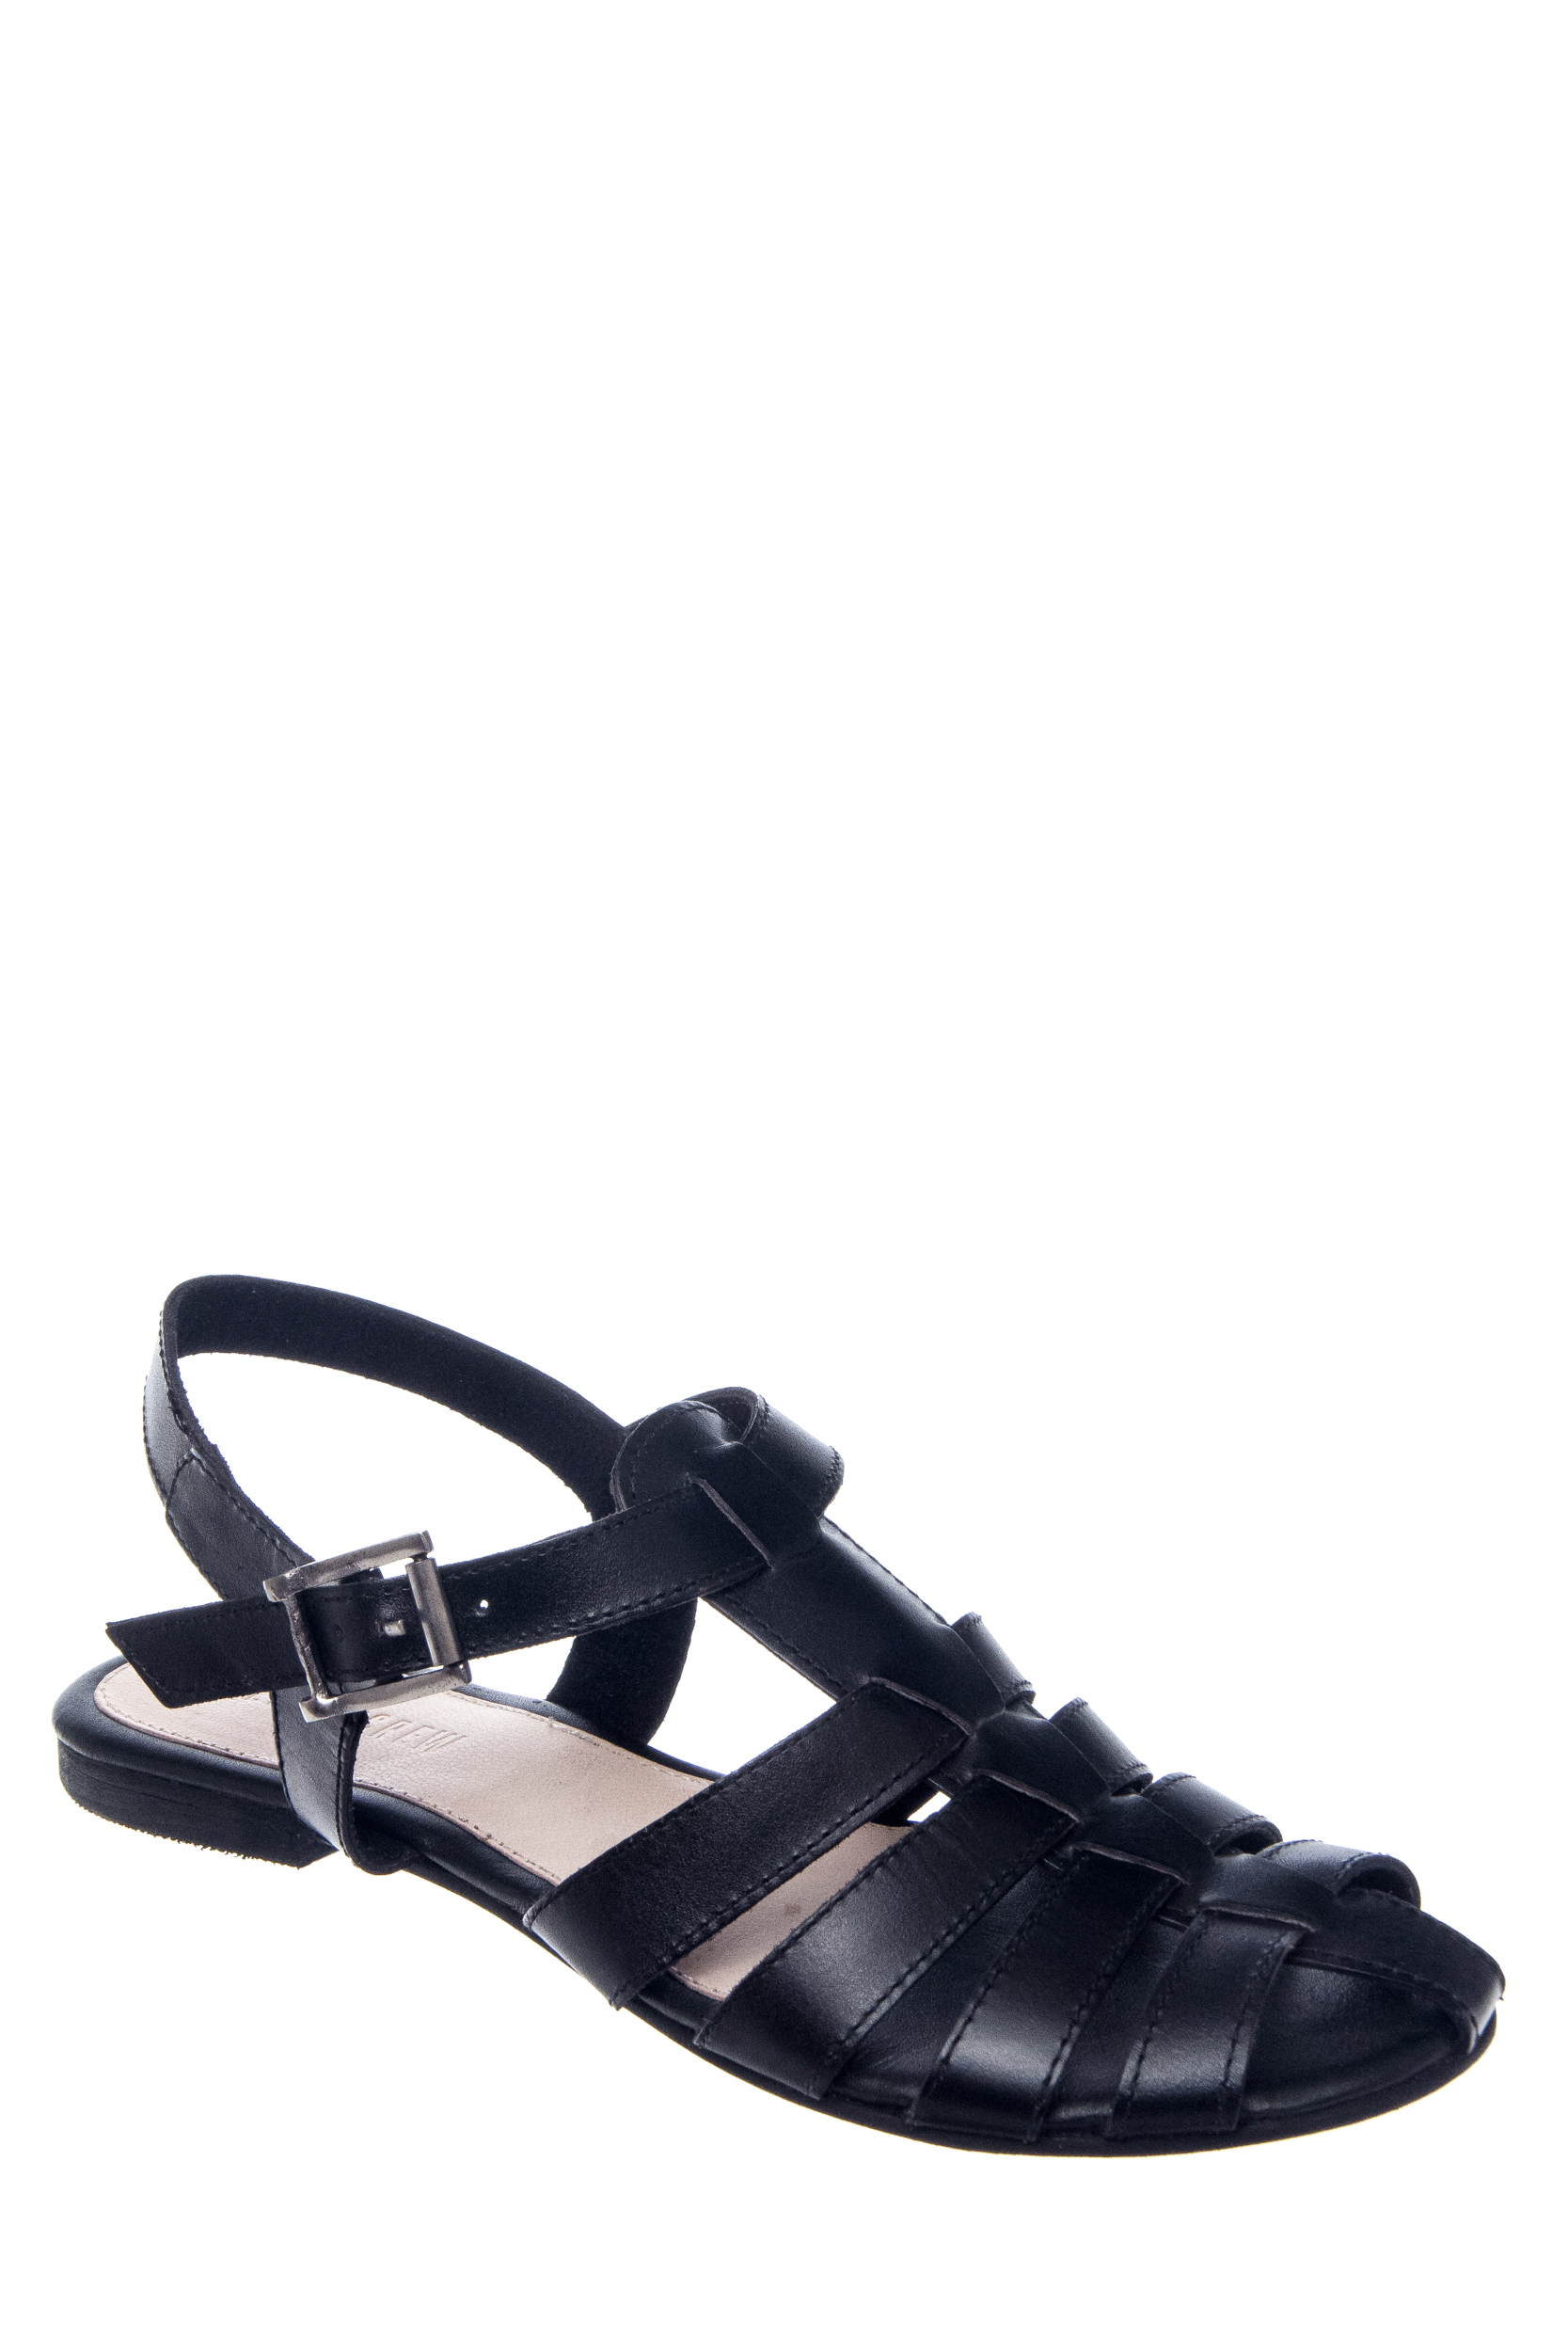 Chelsea Crew Bubble Strappy Flats Sandals - Black